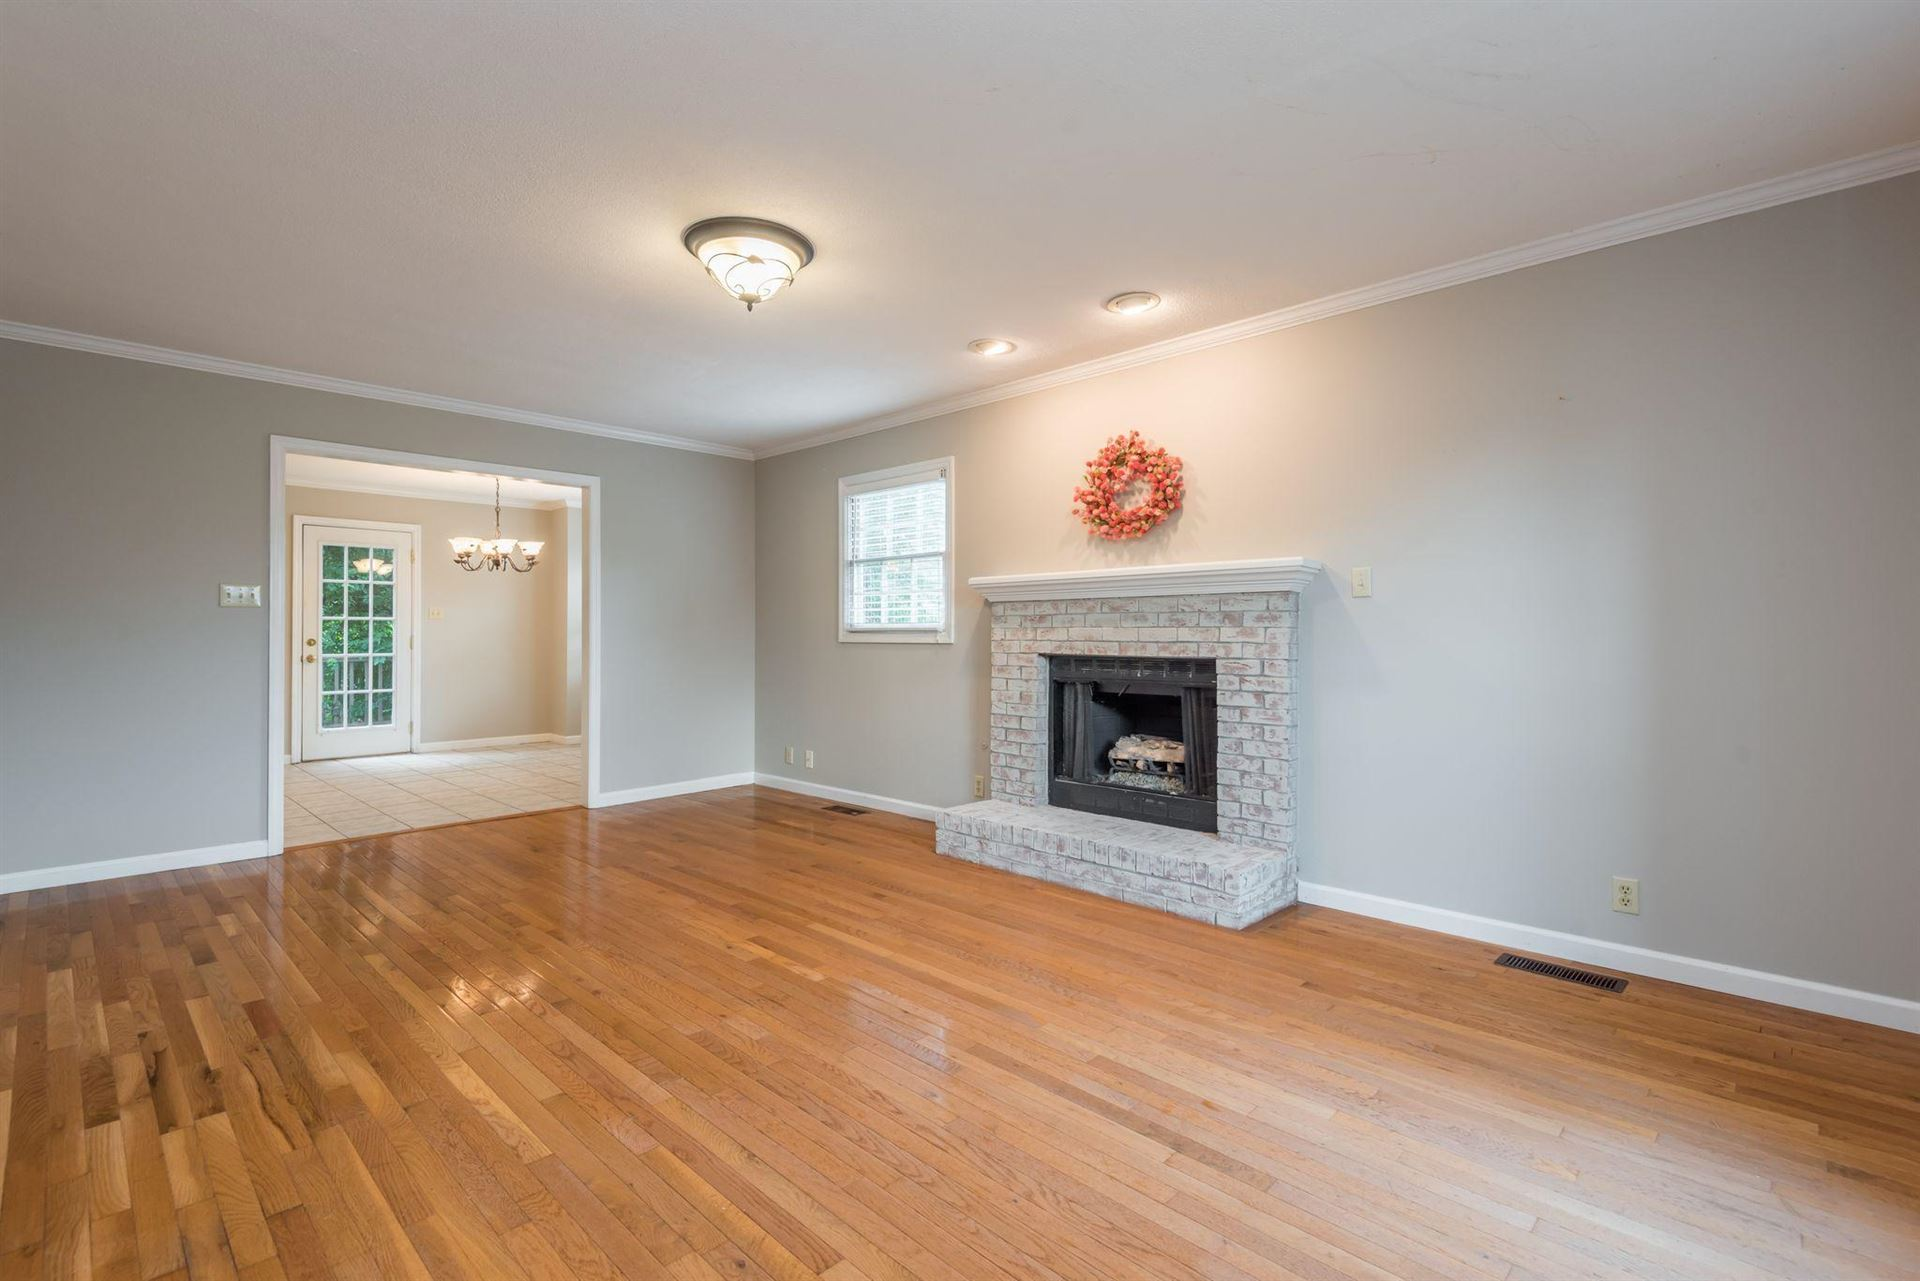 Photo of 1617 Scenic Valley Lane, Knoxville, TN 37922 (MLS # 1121748)